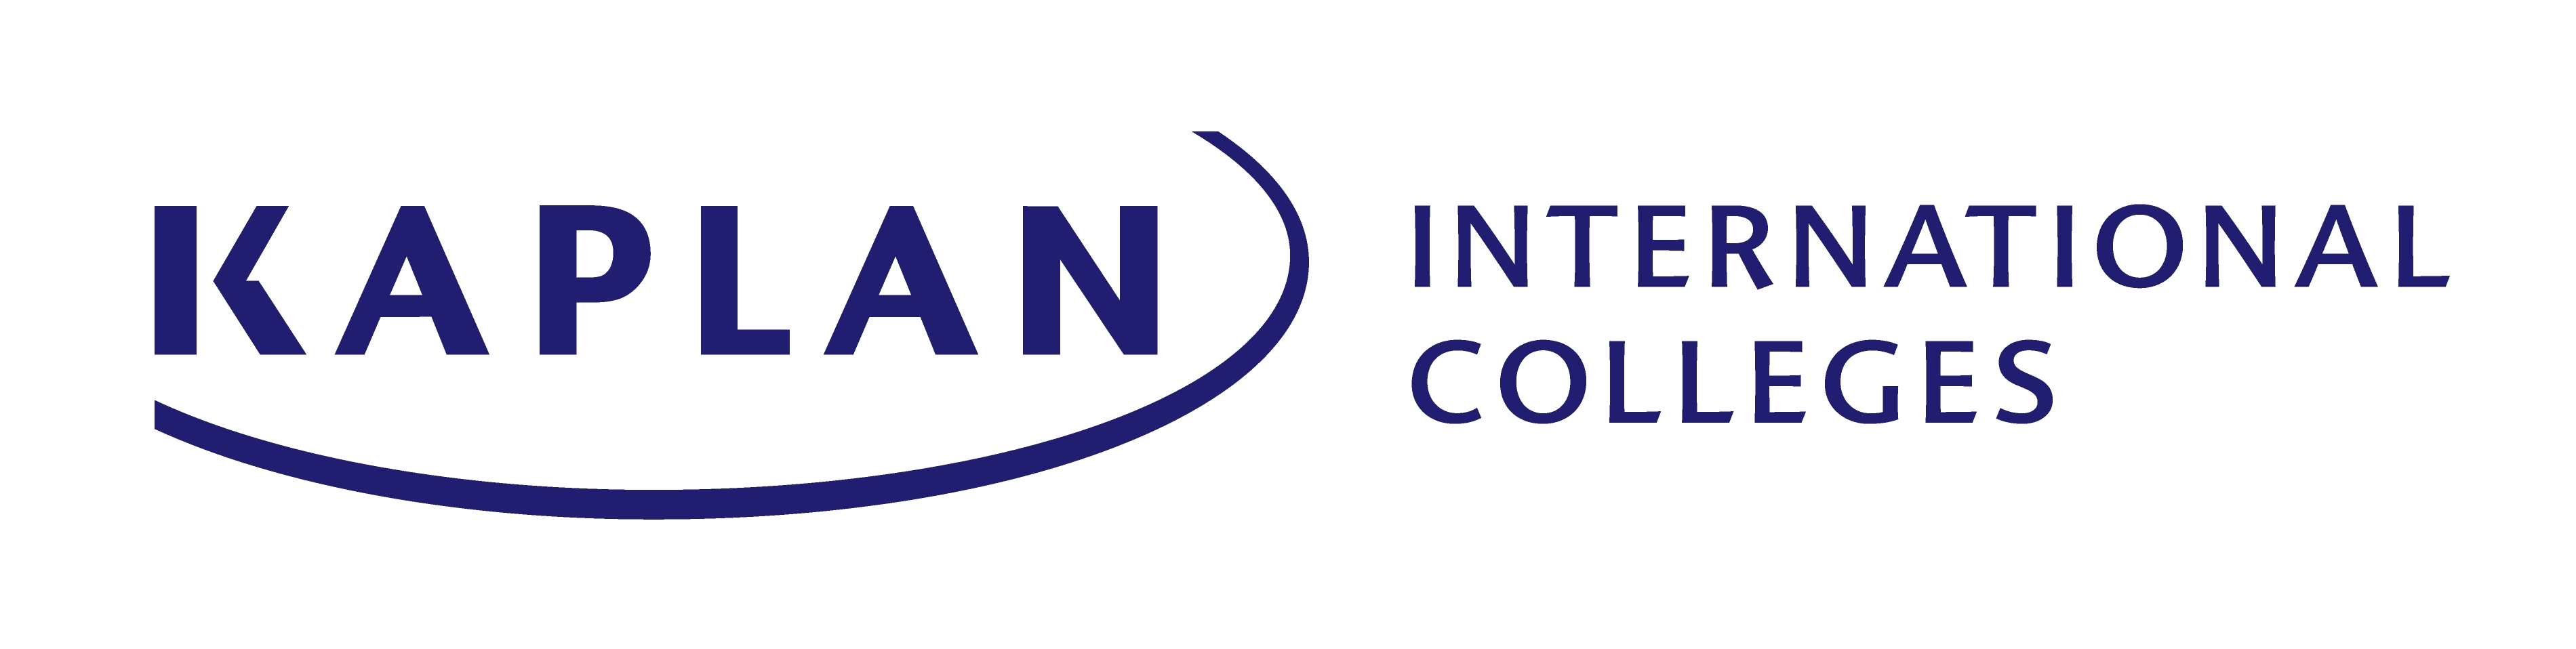 Kaplan International Colleges banner logo